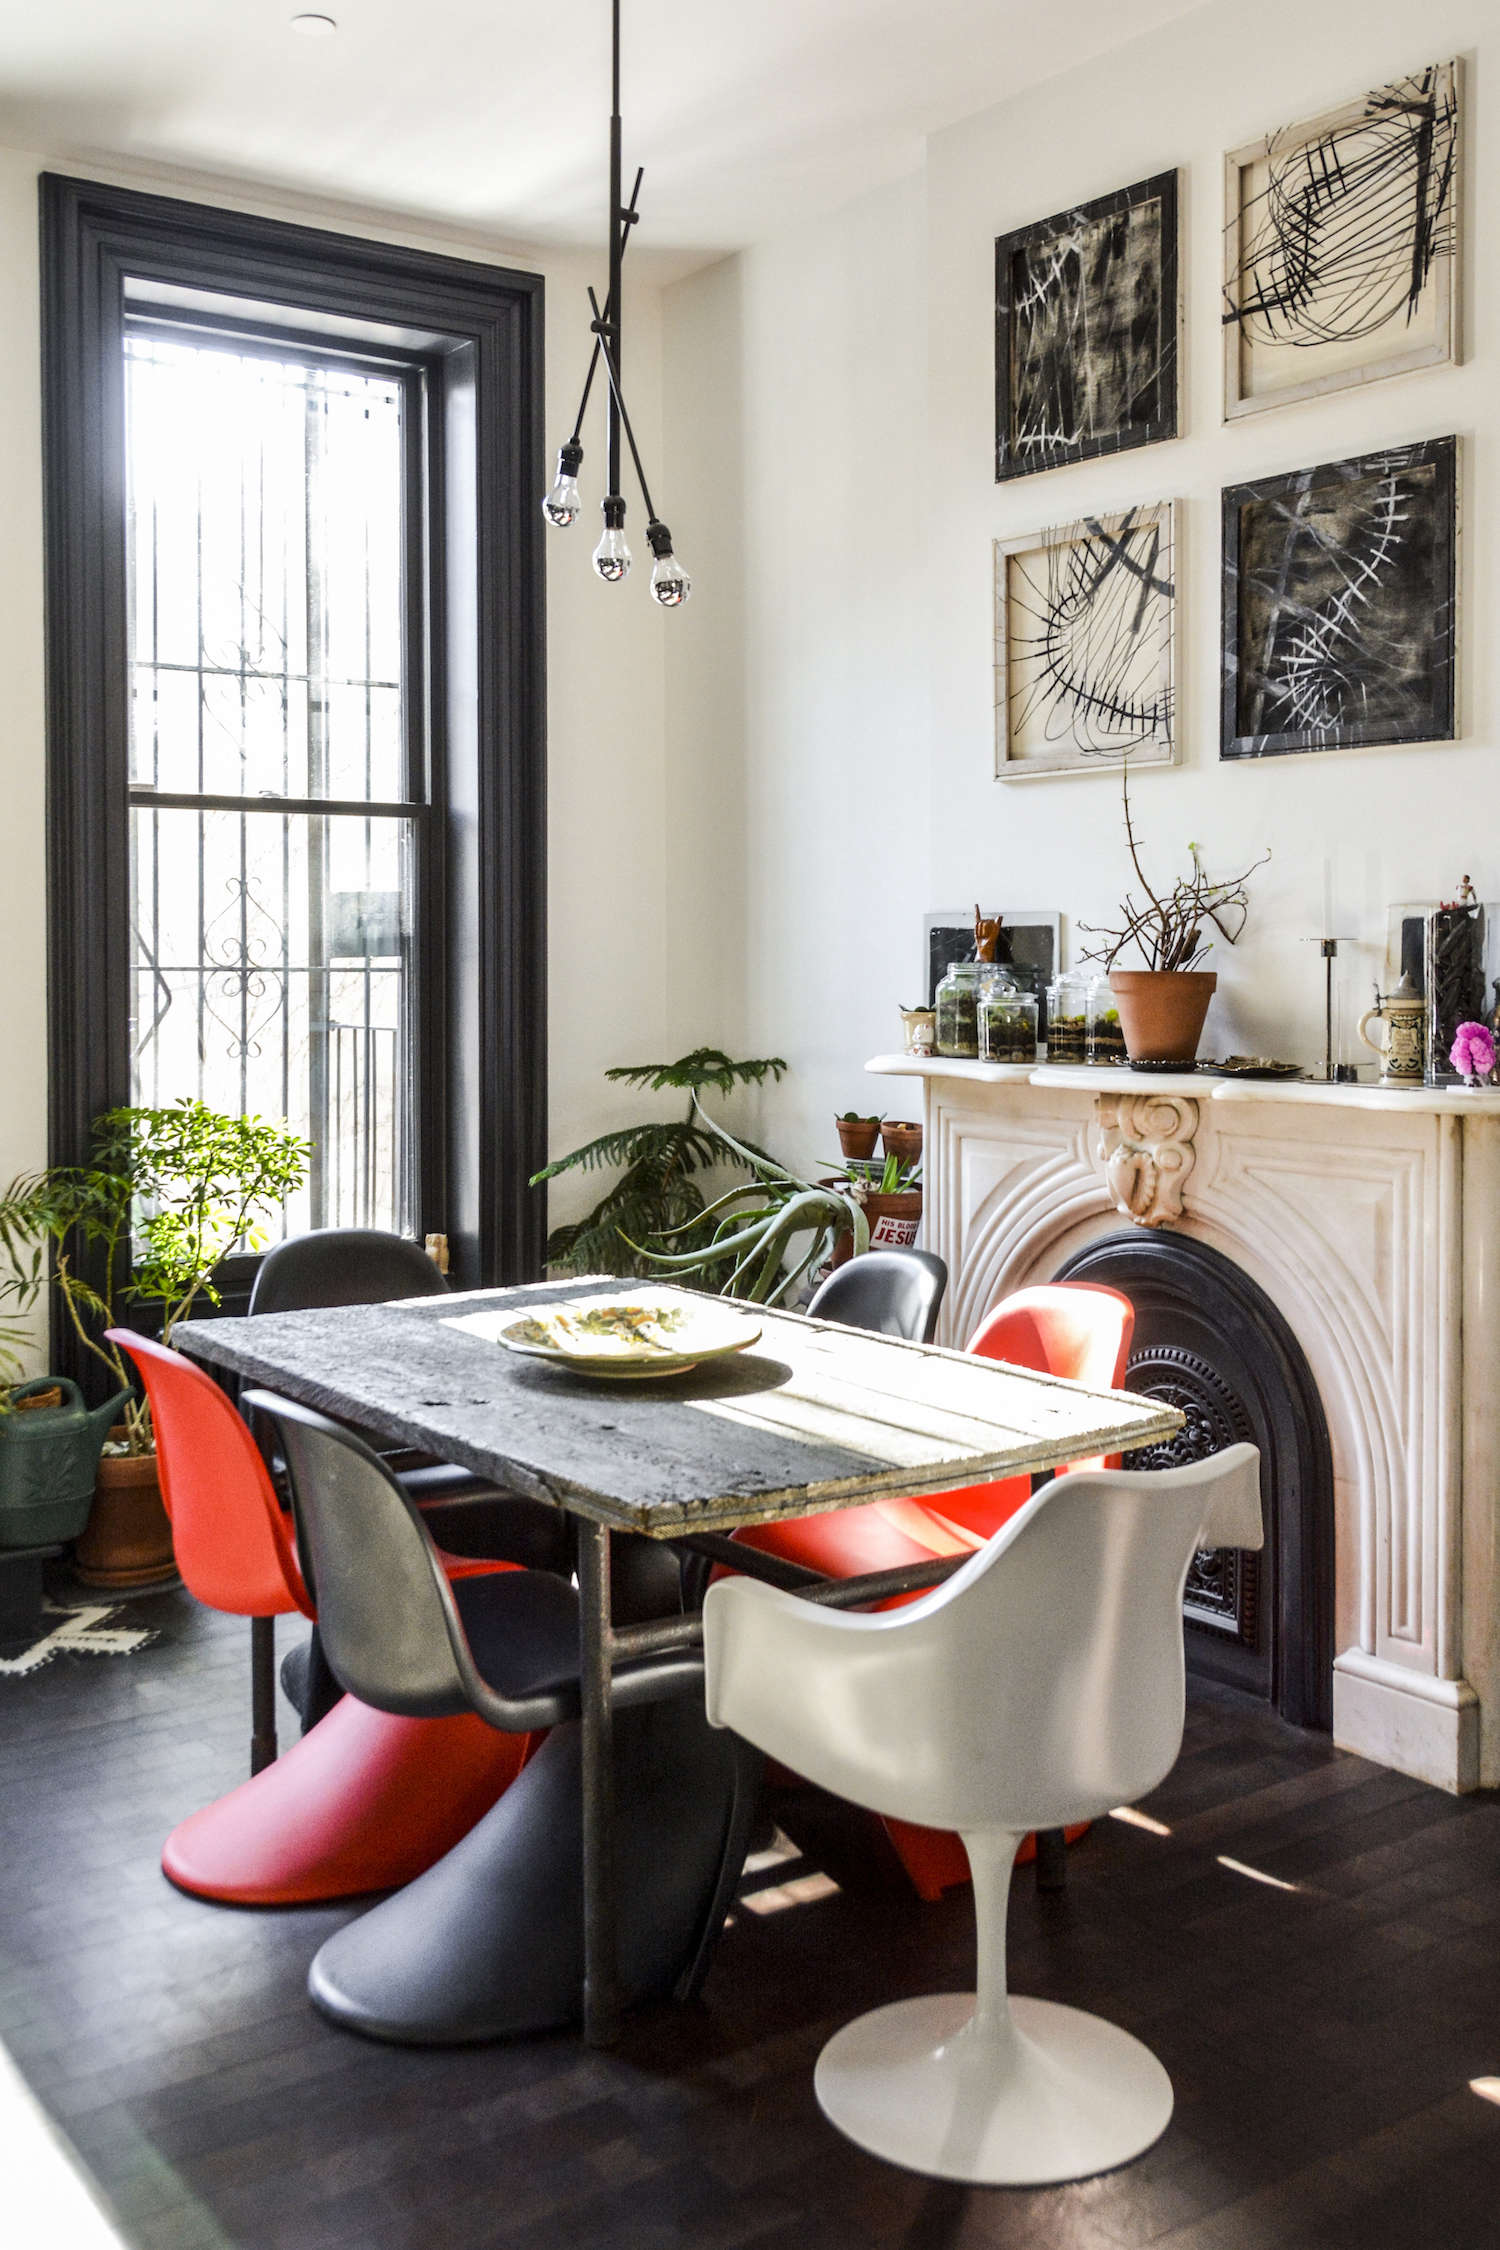 brooklyn dining room by gregory merkel and ana catalina rojas | remodelista 13